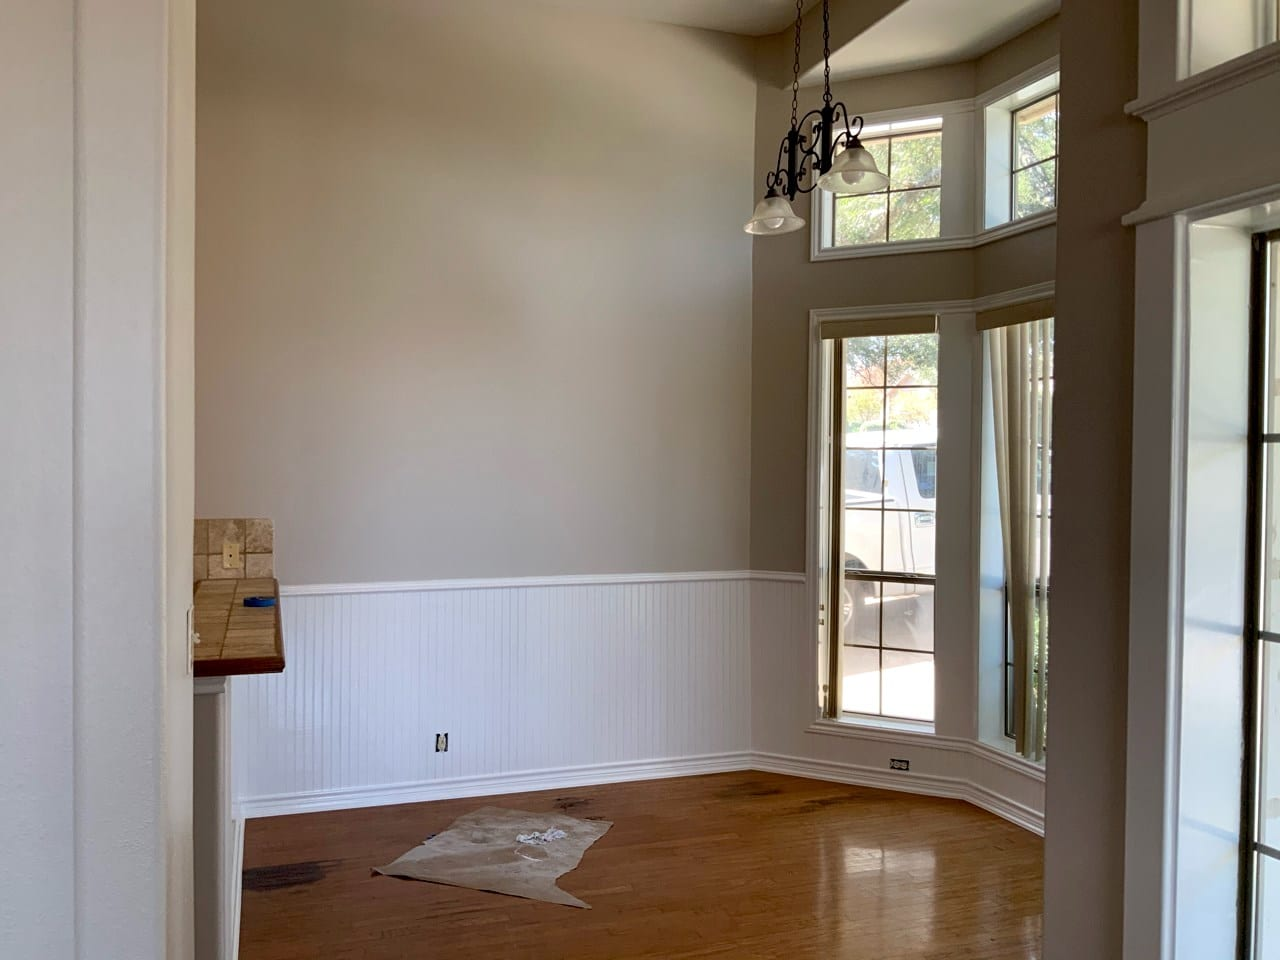 interior cathedral ceilings and wainscoting with wood floors